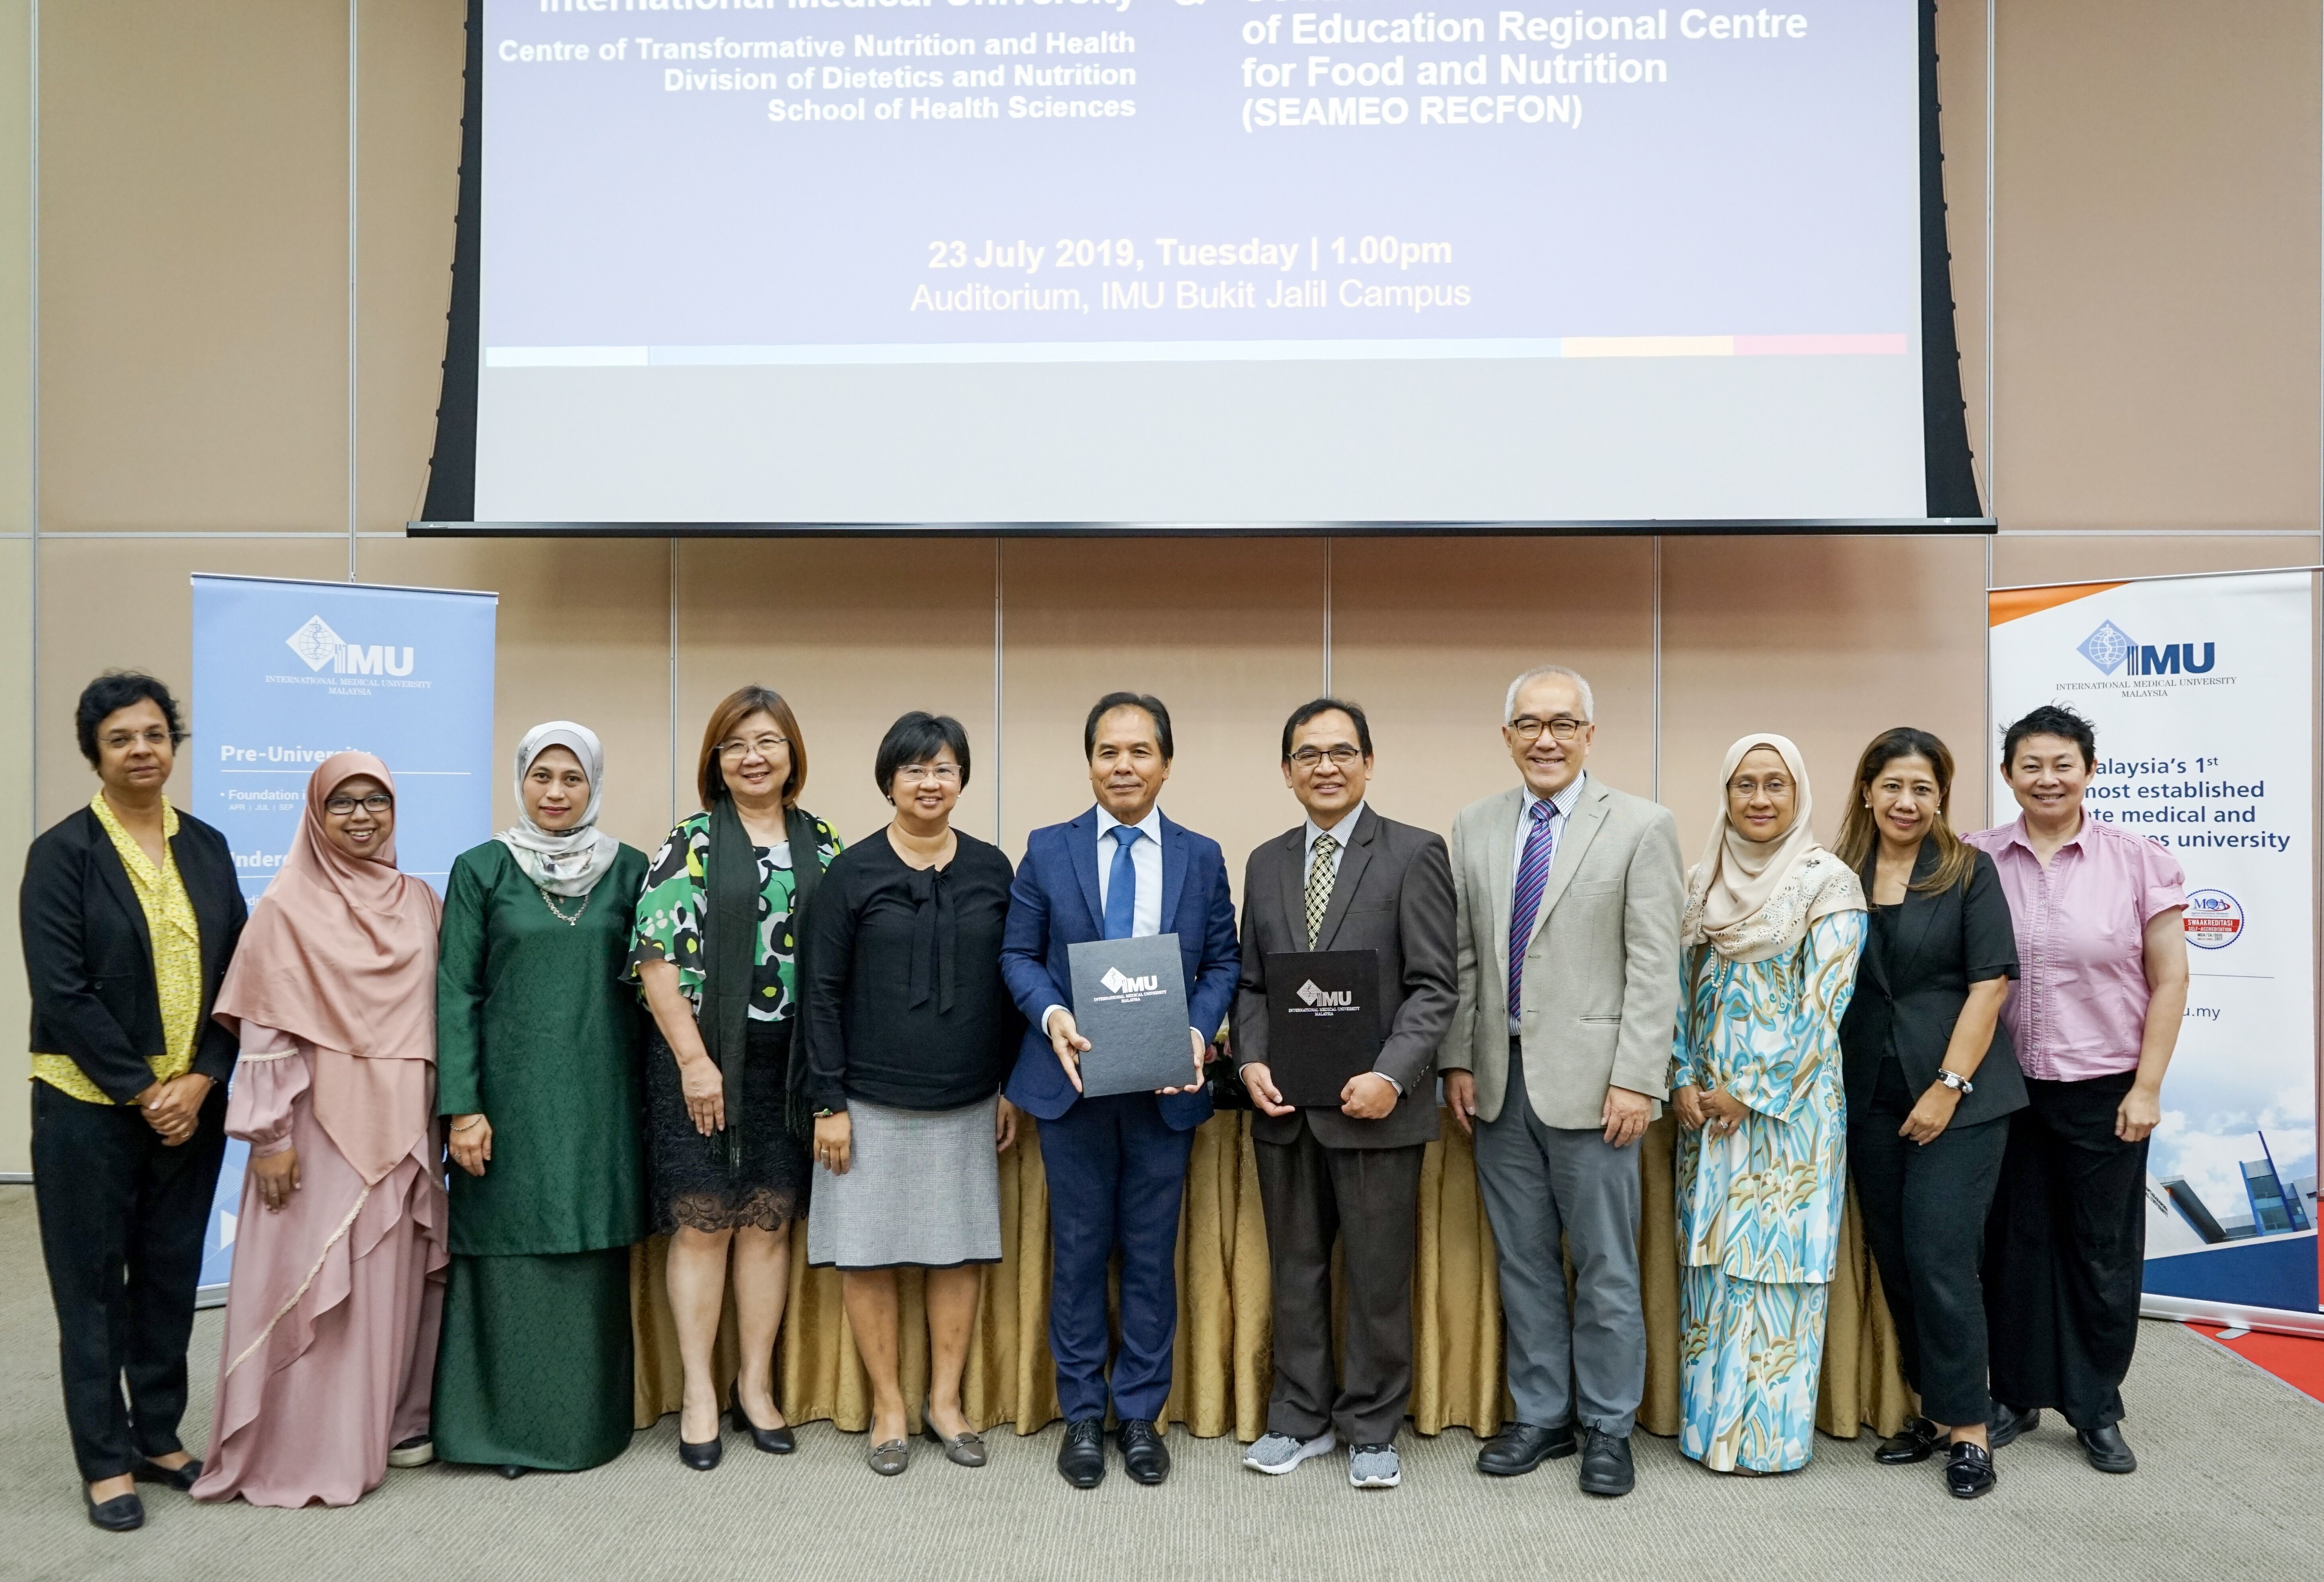 A collaboration between IMU and SEAMEO RECFON in health and medical research on nutrition and food safety training in Southeast Asia.